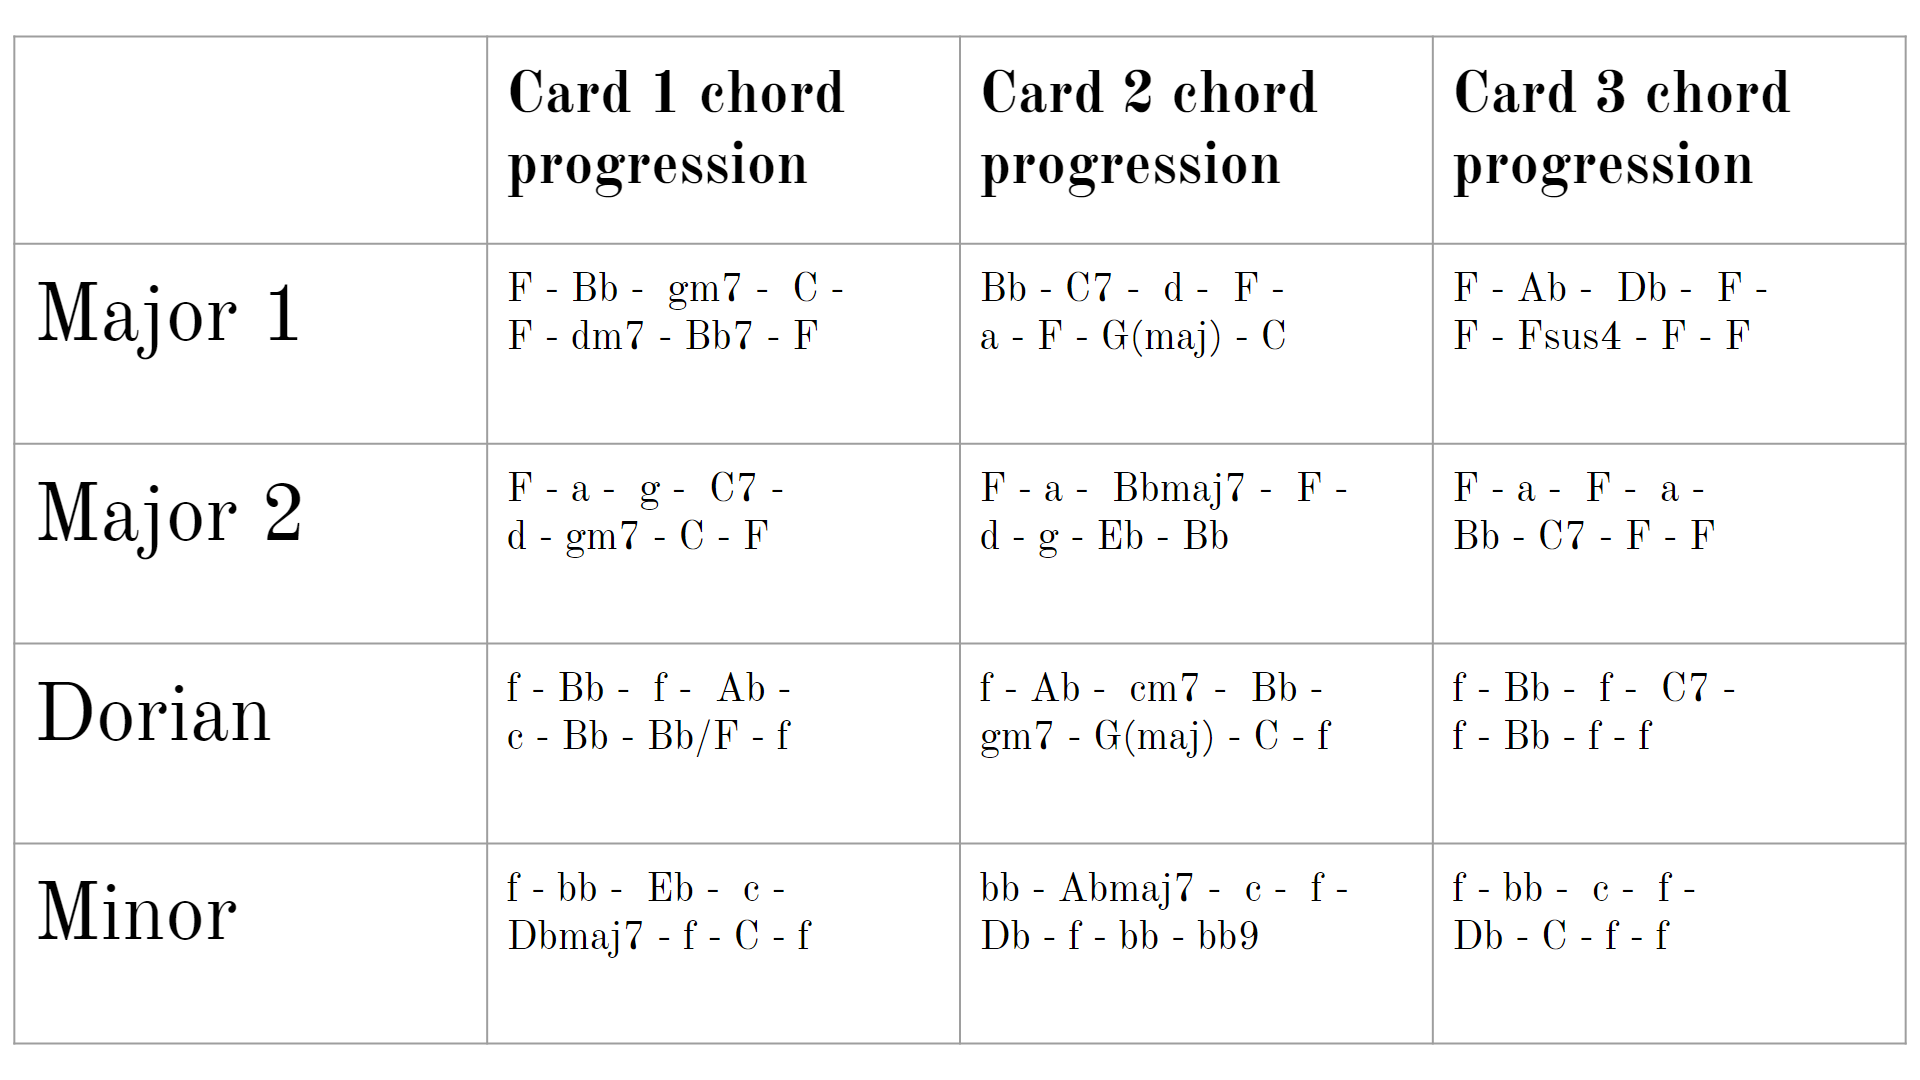 A cross table linking the 4 possible progressions (which are Major 1, Major 2, Dorian, and Minor), and the 3 card chord progressions.